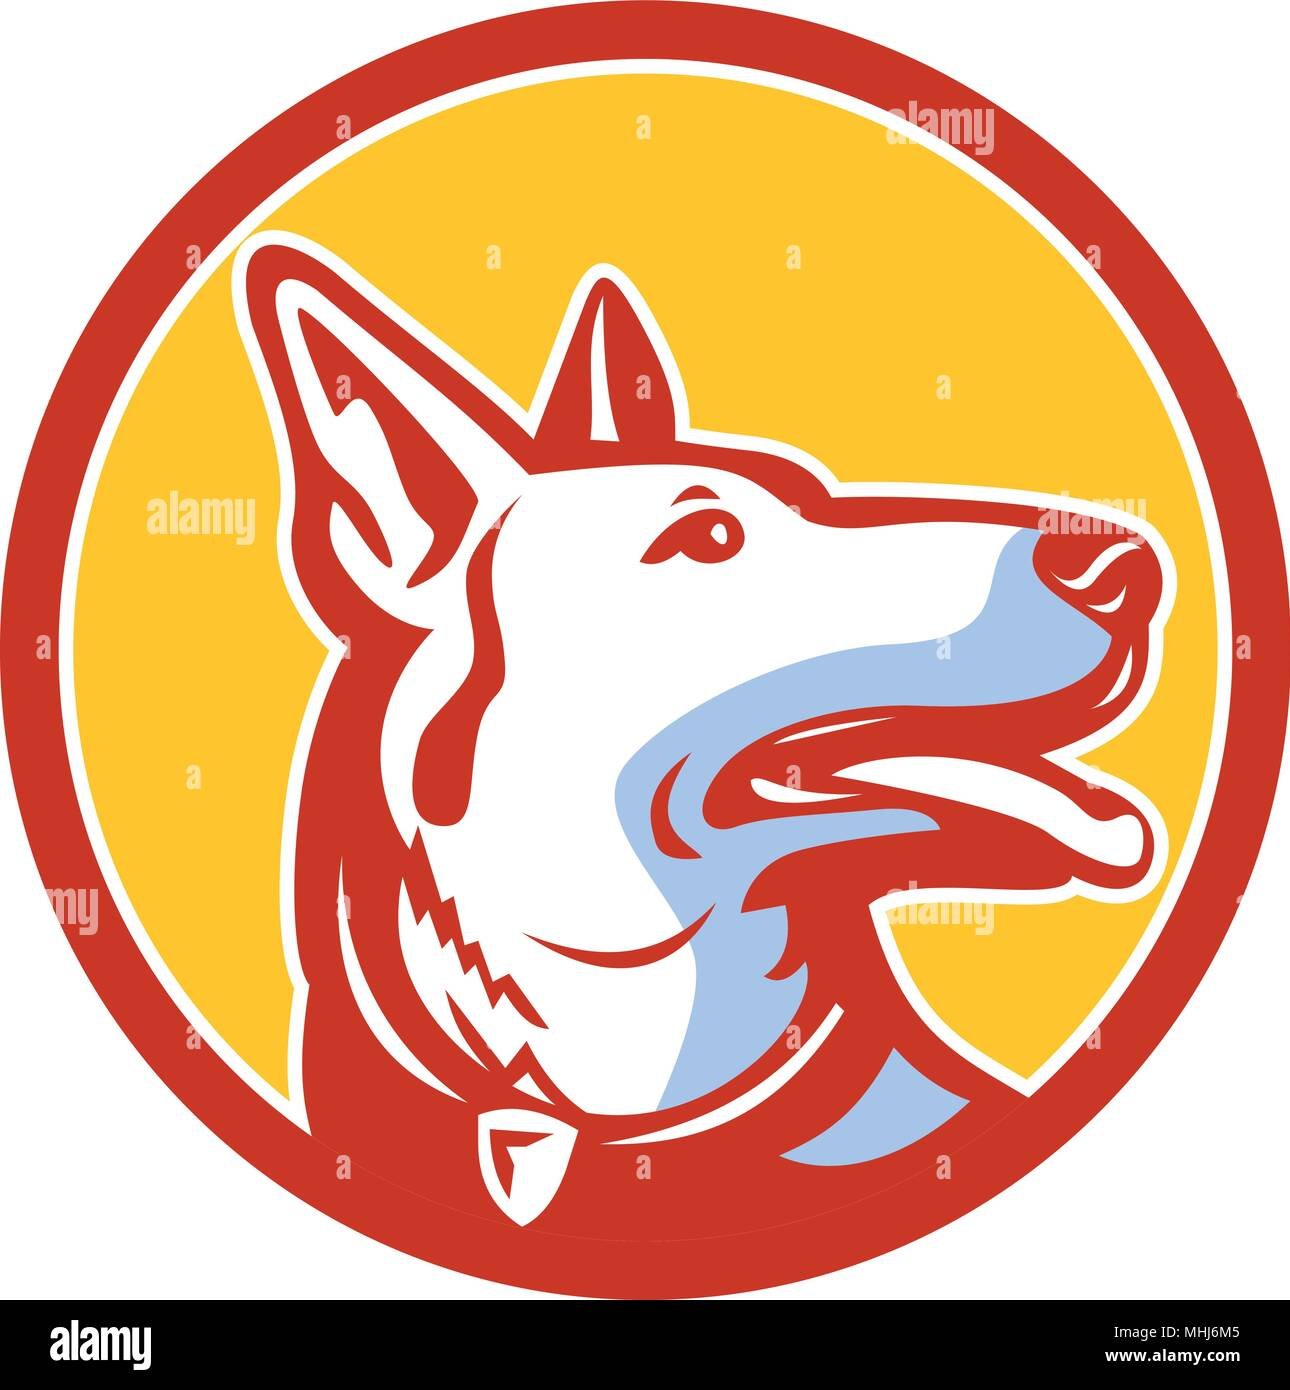 Mascot icon illustration of head of a police dog, German Shepherd, Alsatian wolf dog or sometimes abbreviated as GSD looking up set inside circle view - Stock Vector